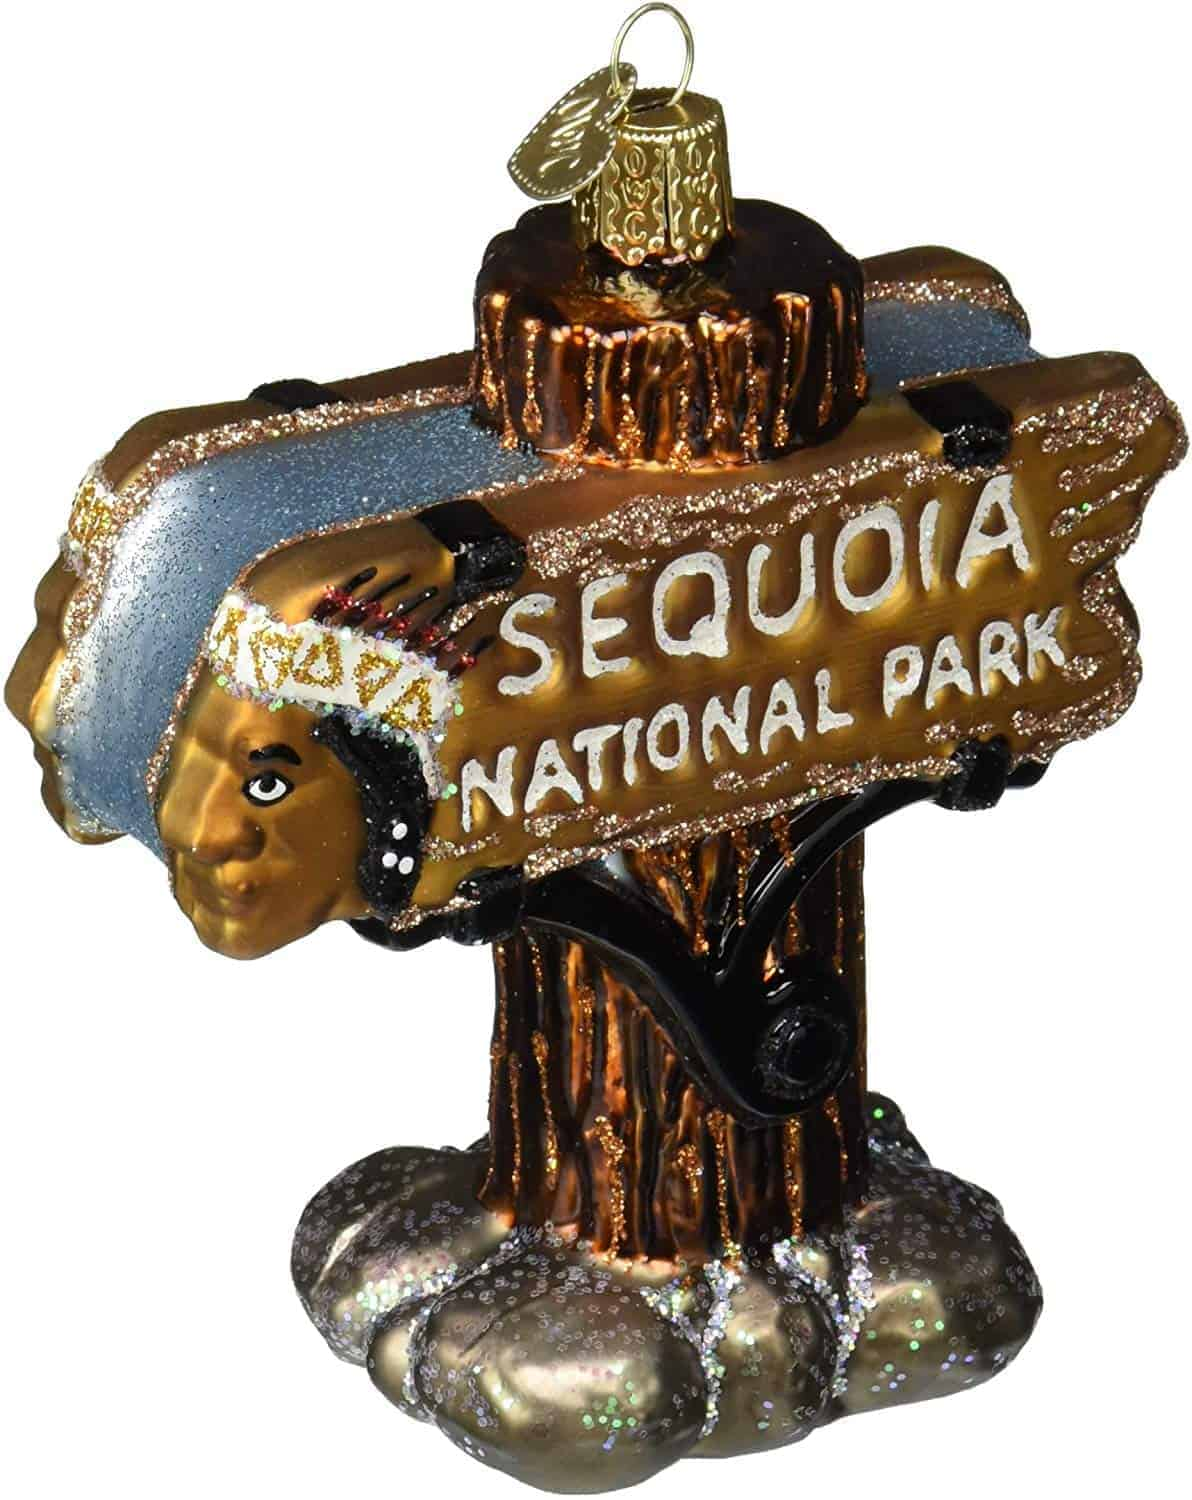 Sequoia-National-Park-ornament-Christmas